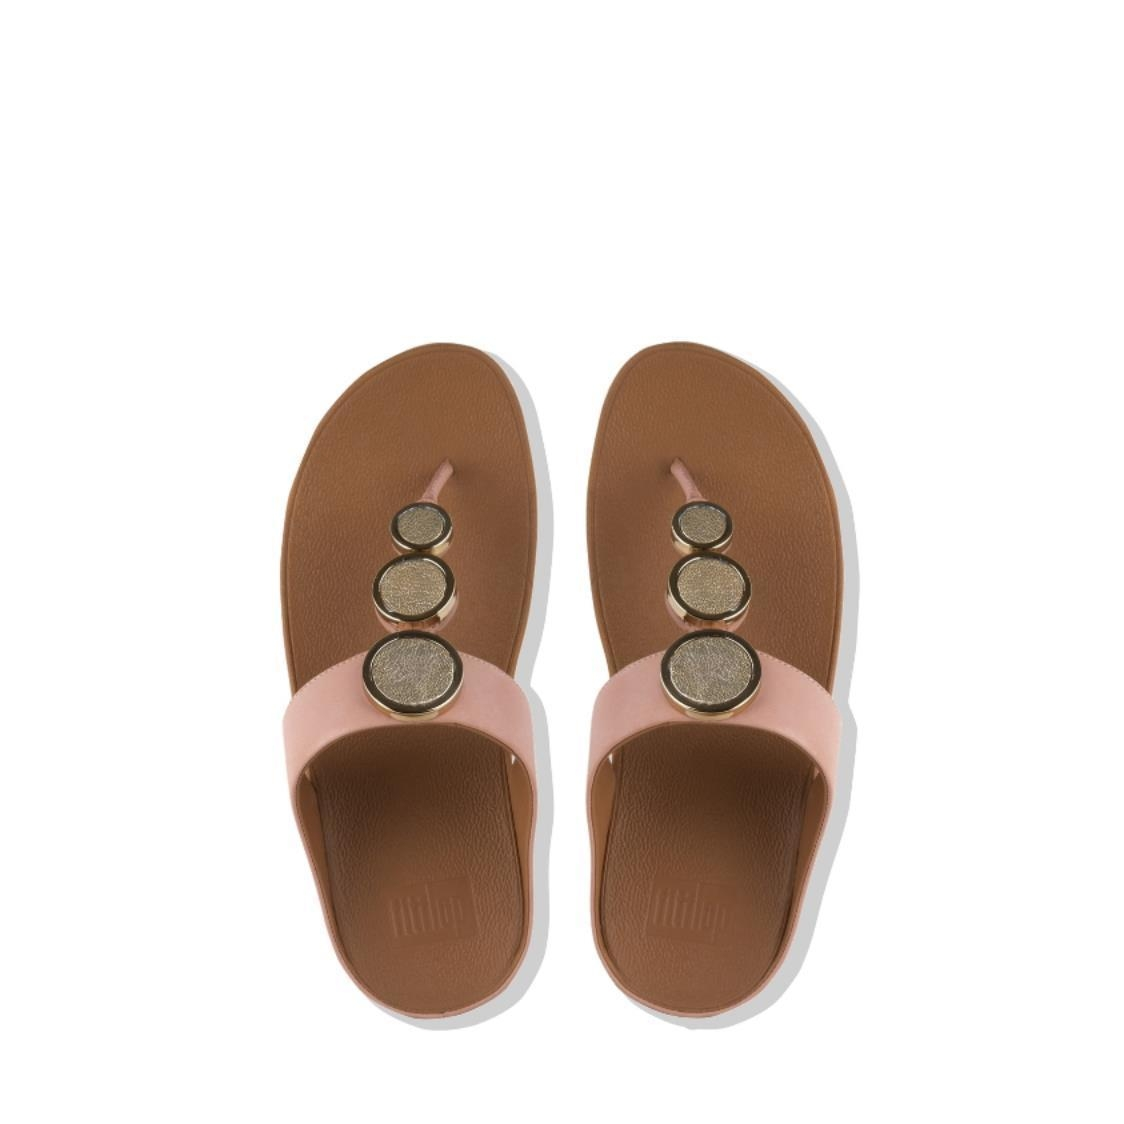 Halo Leather Toe-Thong Sandals Rose Gold